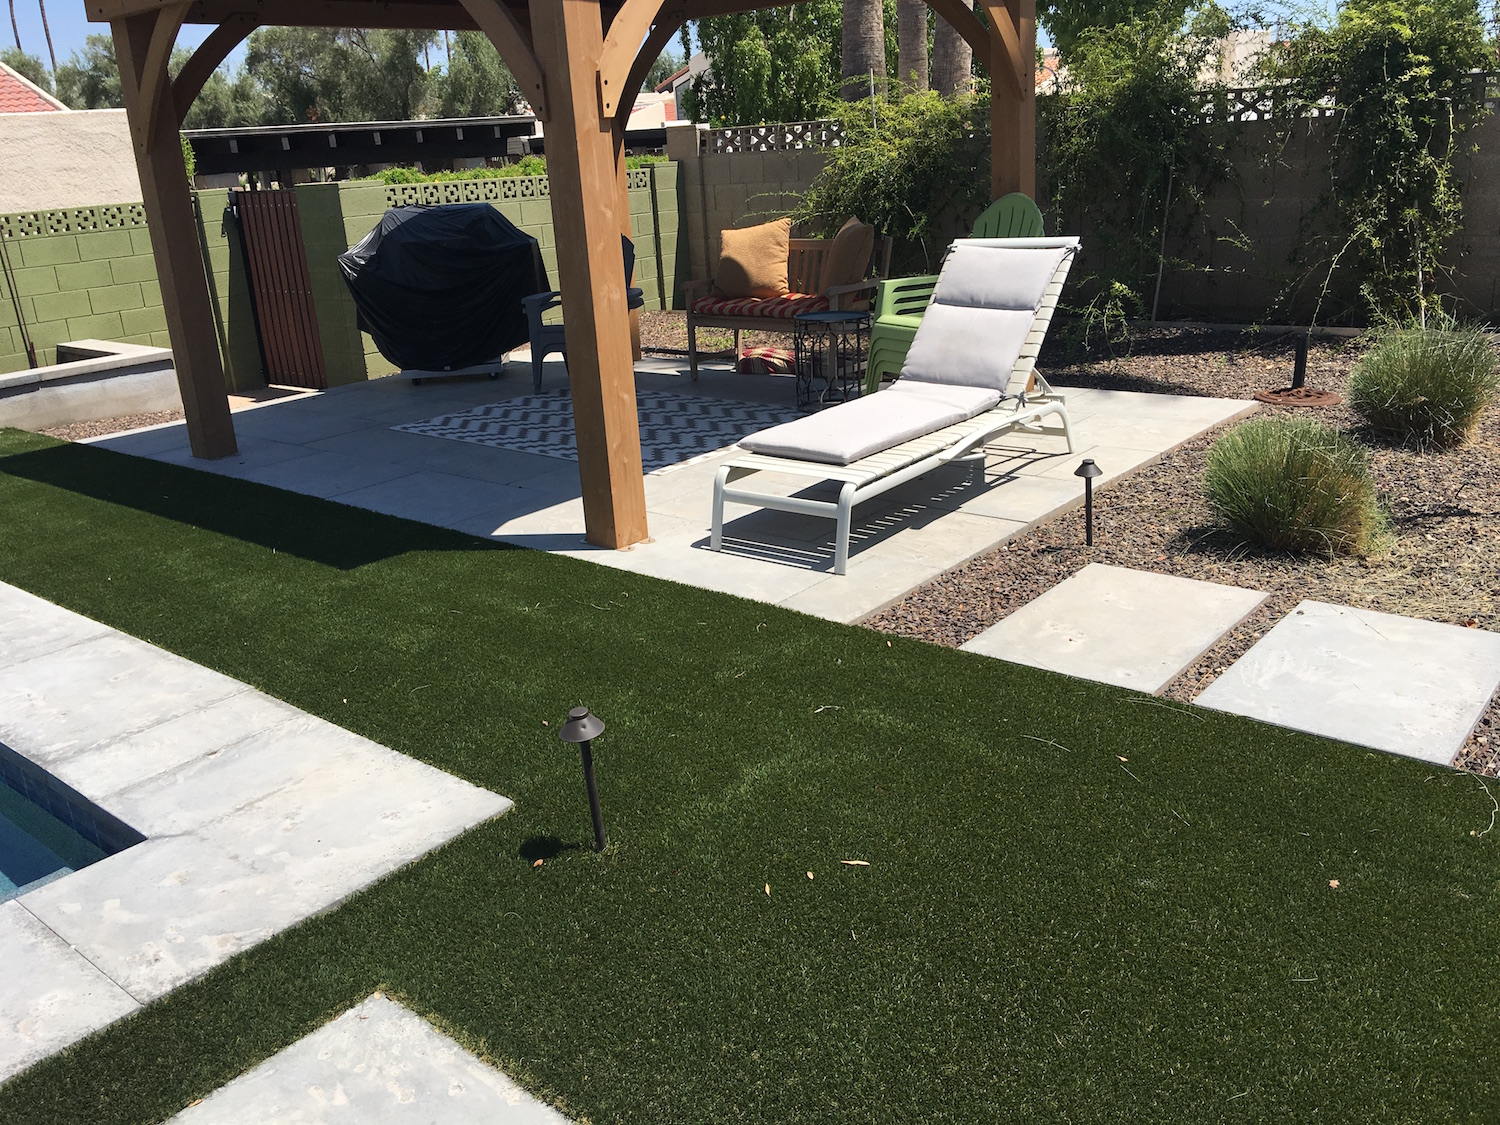 Mesa Precast | Pavers, Pool coping | Unified Landscape Design Accent